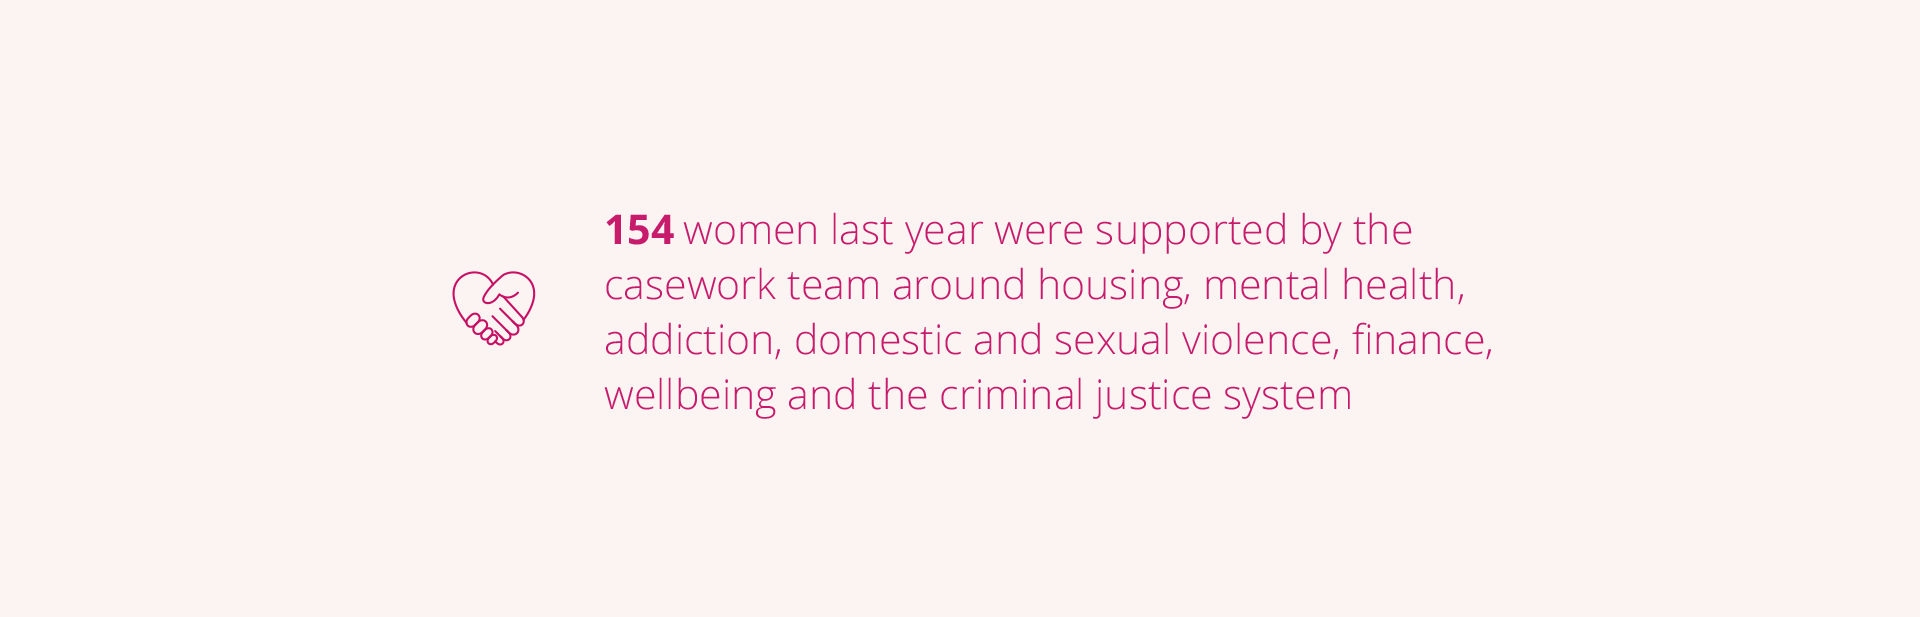 154 women last year were supported by the casework team around housing, mental health, addiction, domestic and sexual violence, finance, wellbeing and the criminal justice system